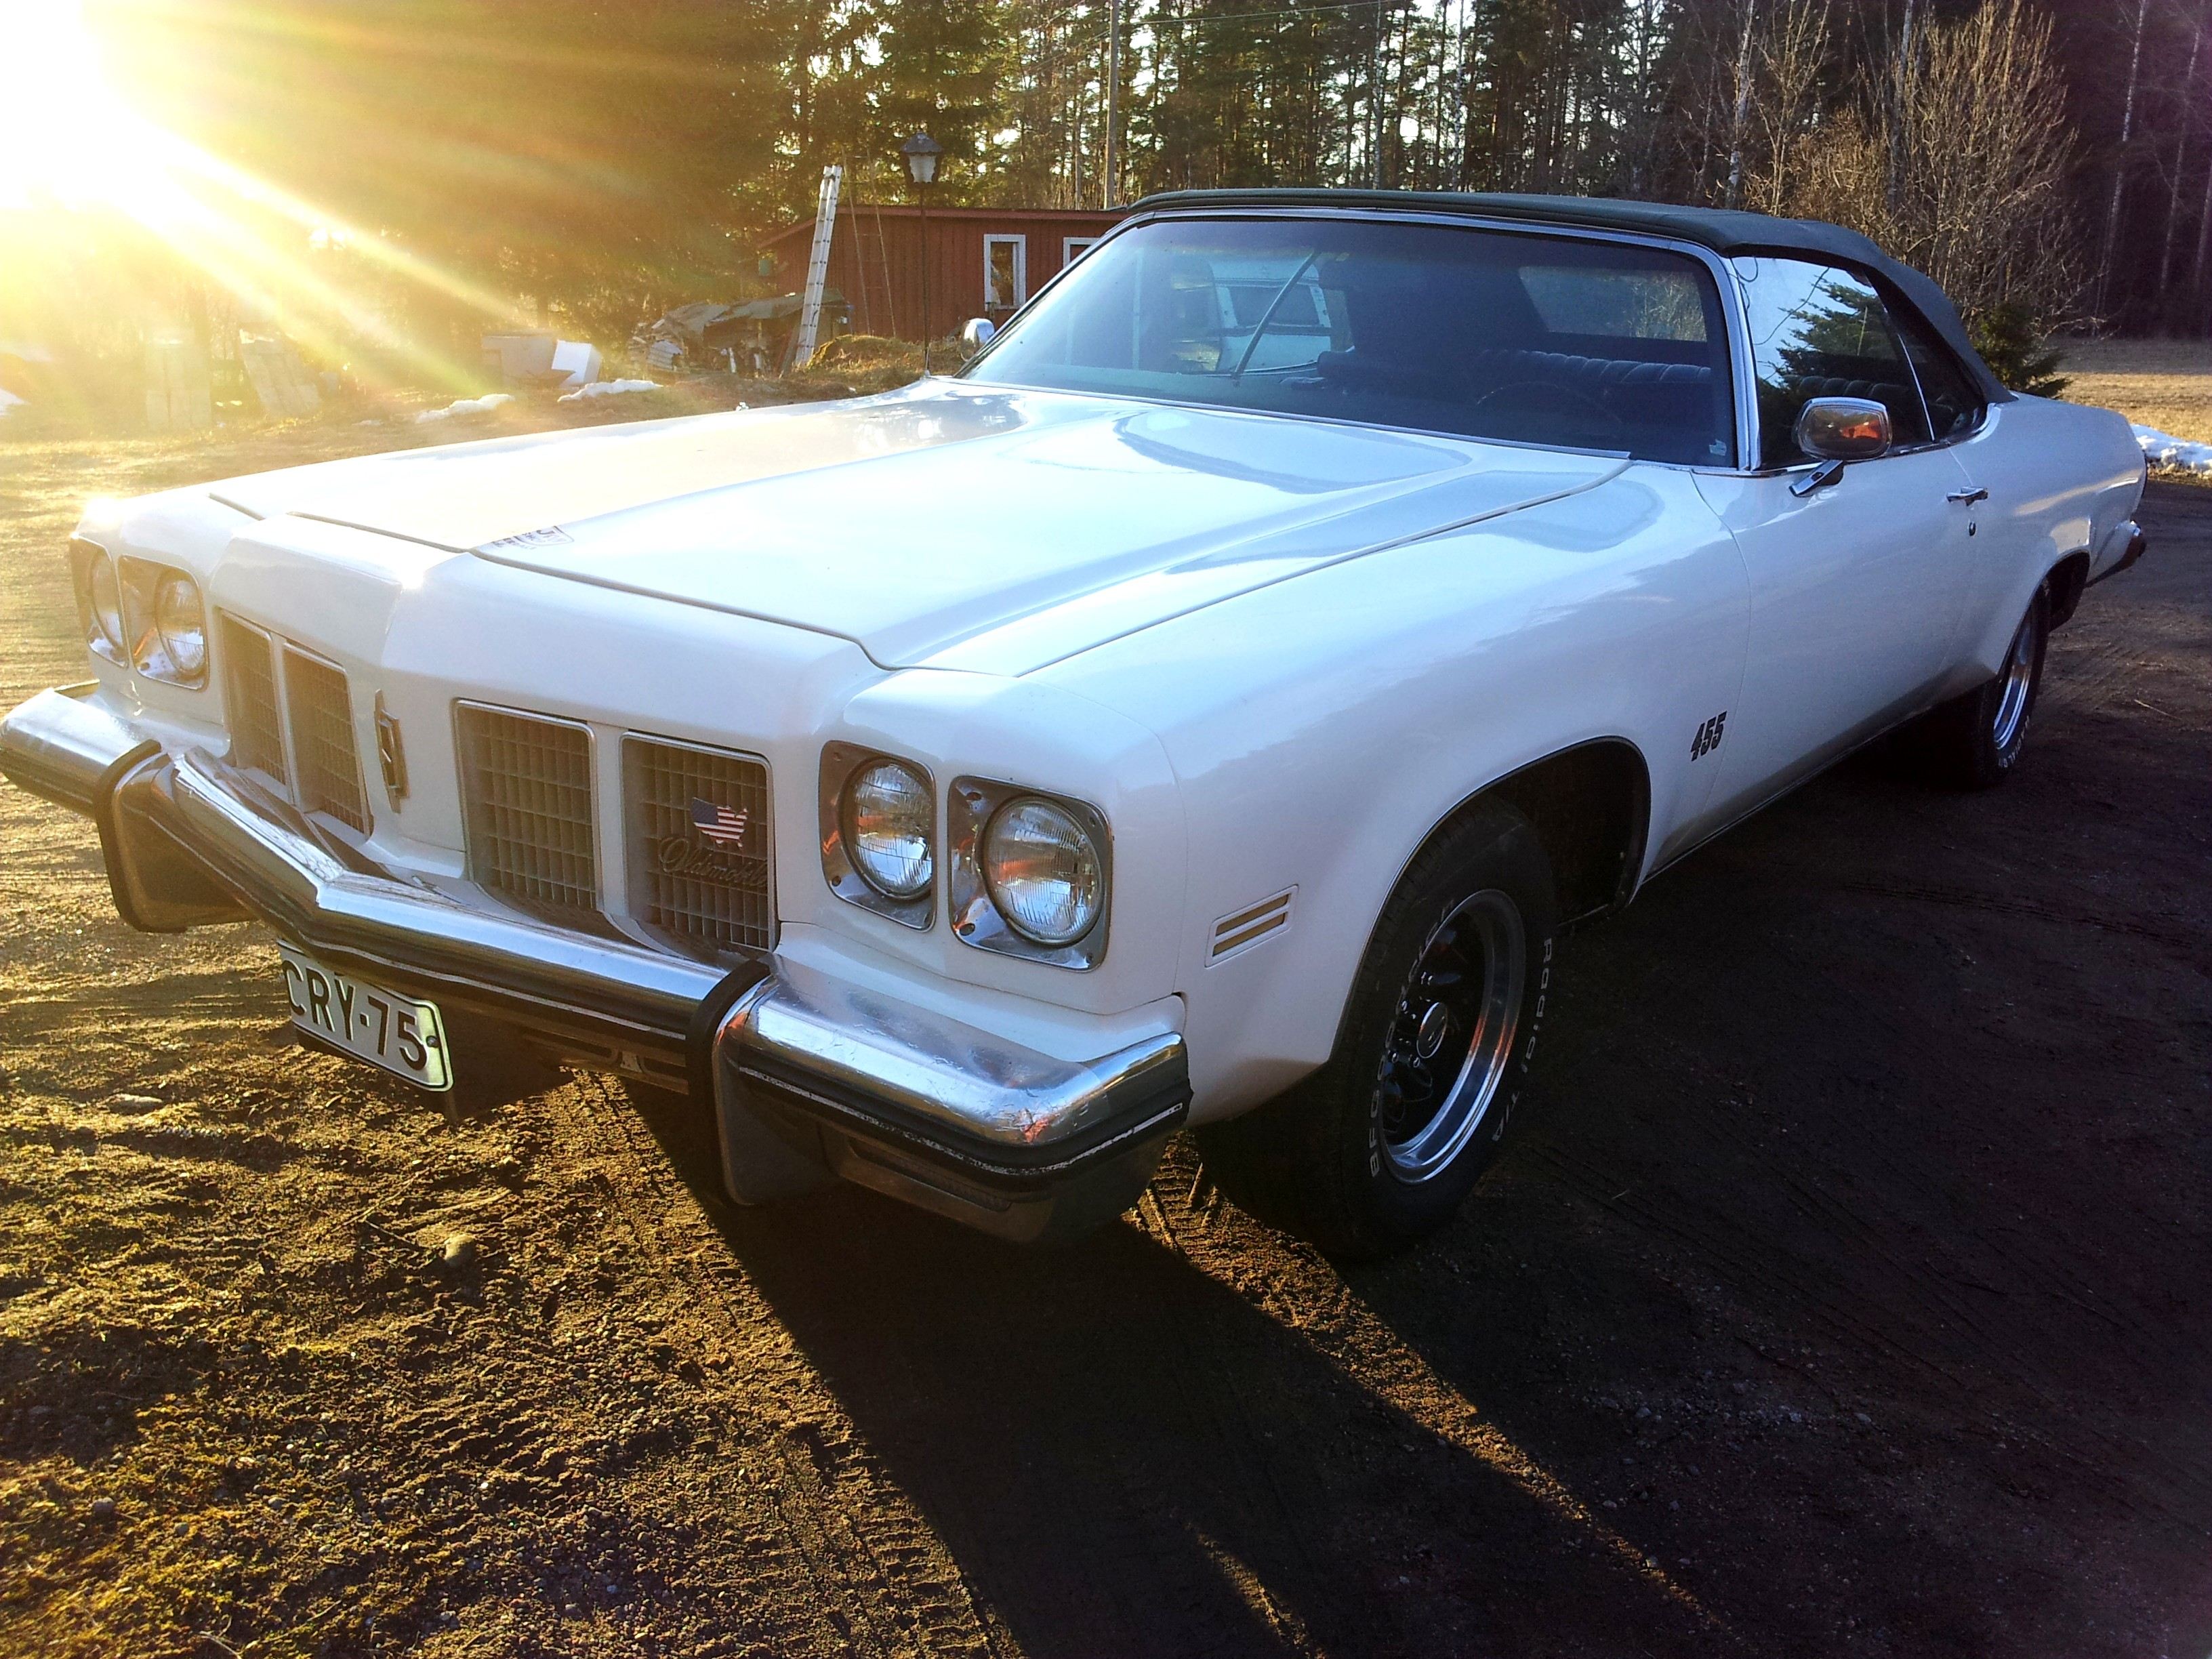 1975 Oldsmobile Delta 88 Royale convertible 455cid